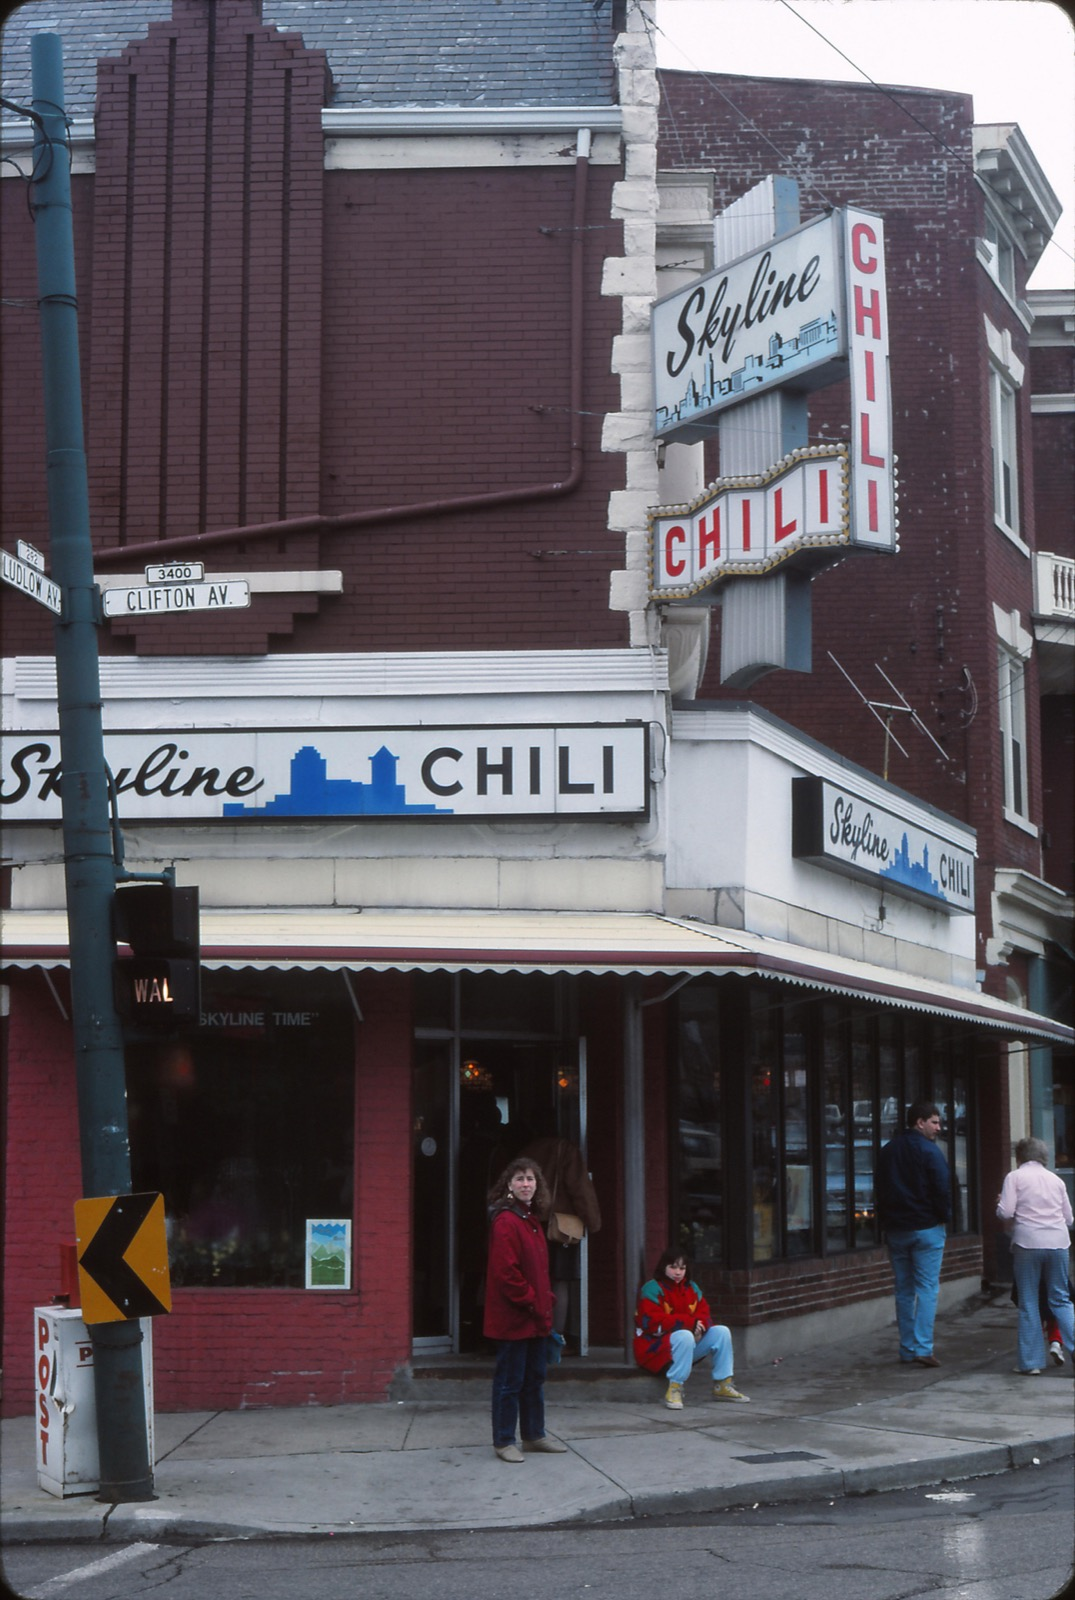 Skyline Chili, Ludlow Street, Cliton / Image courtesy of Flickr user mplstodd // Published: 3.12.18